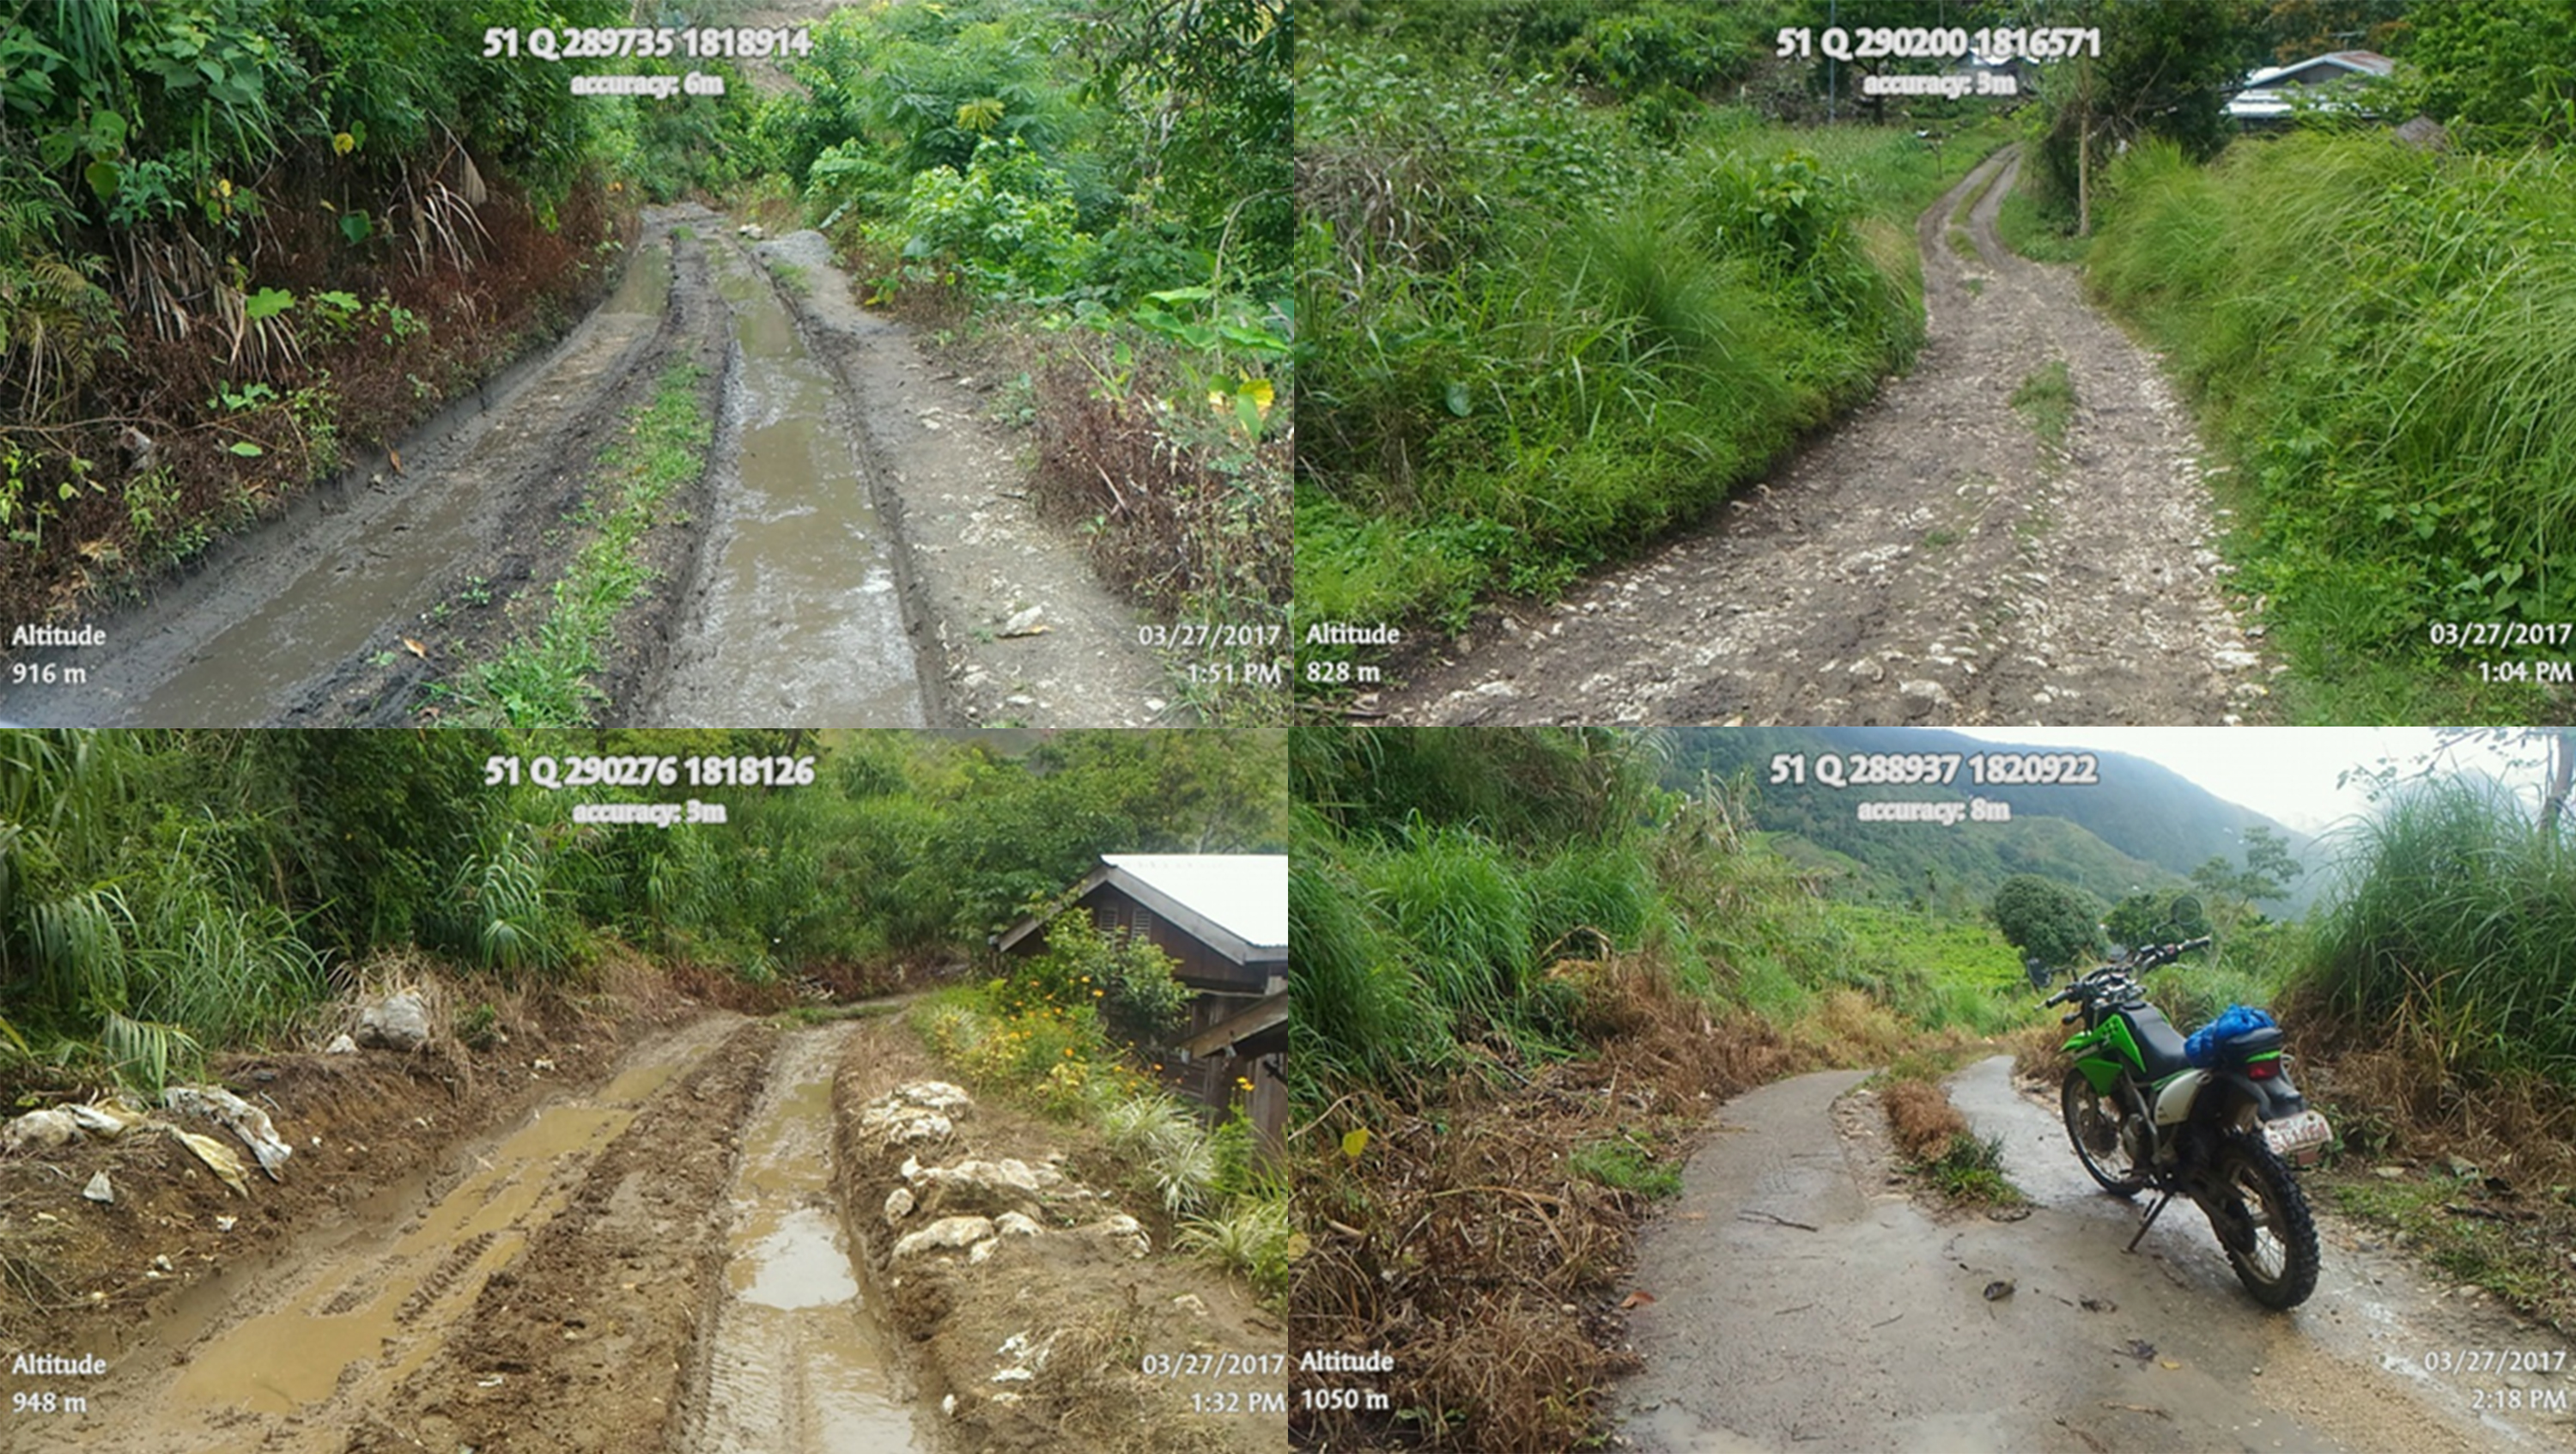 Areas where the Pallas-Nansiakan Tire Path will be constructed